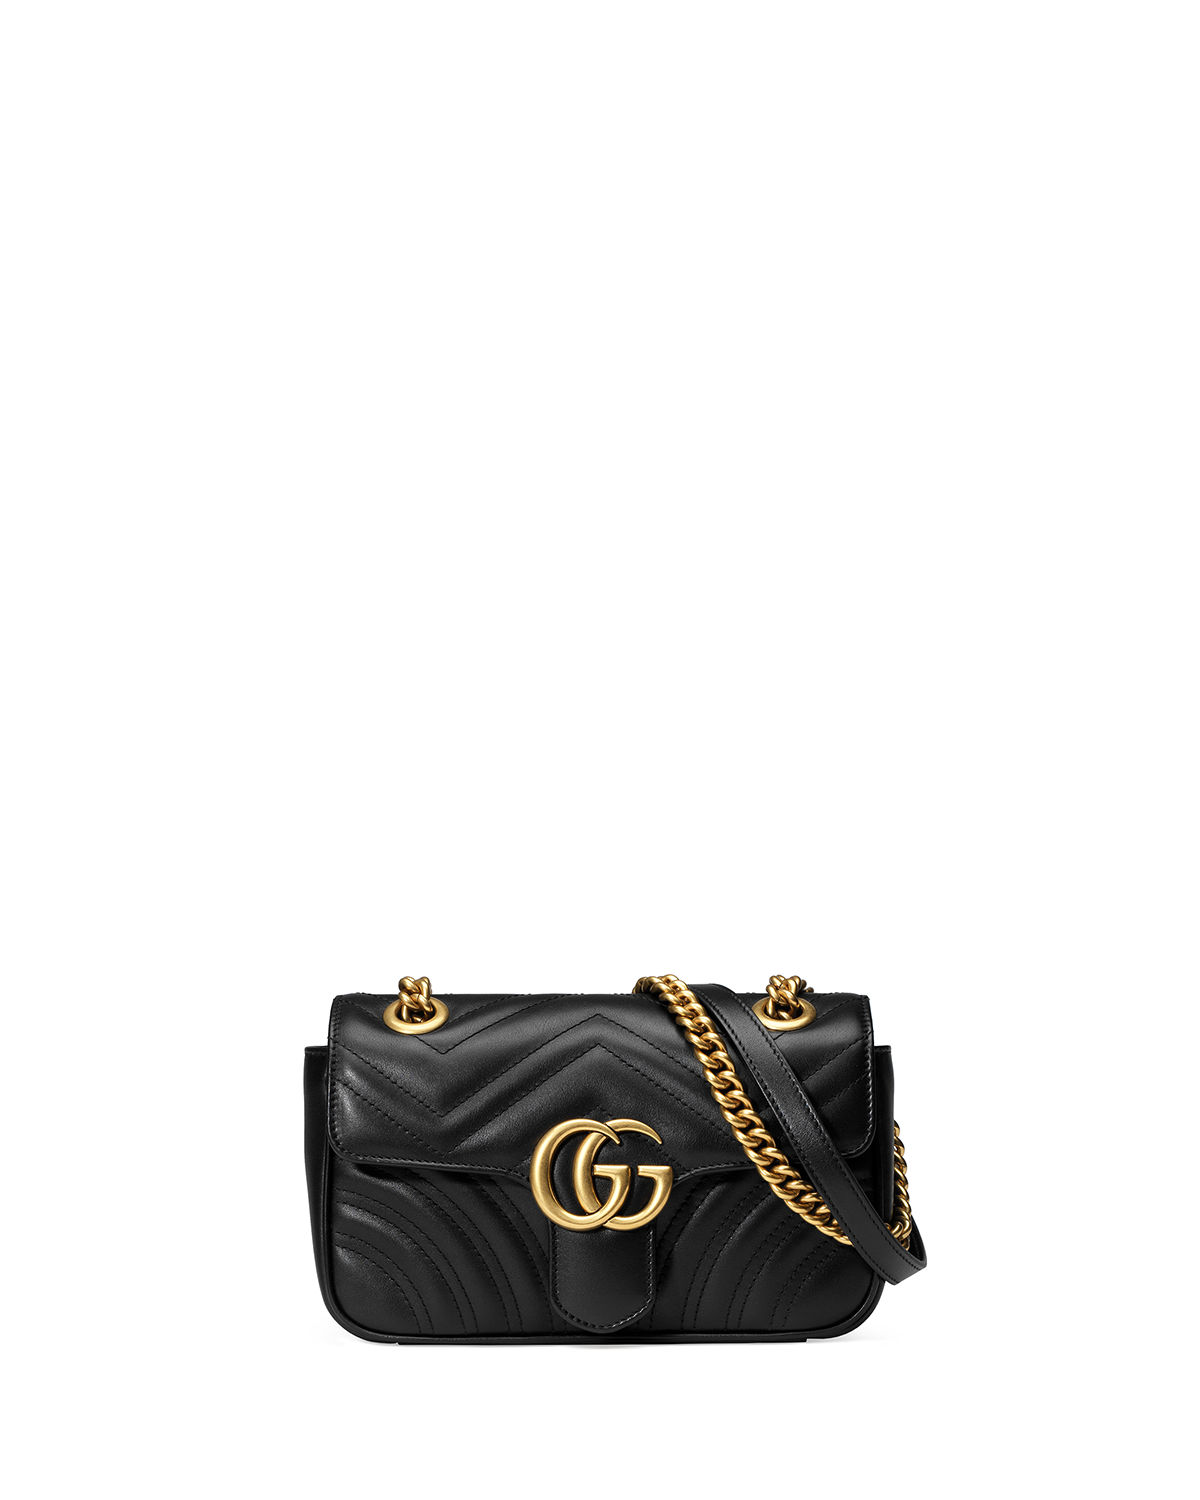 053addaf831 Gucci GG Marmont 2.0 Mini Matelasse Shoulder Bag